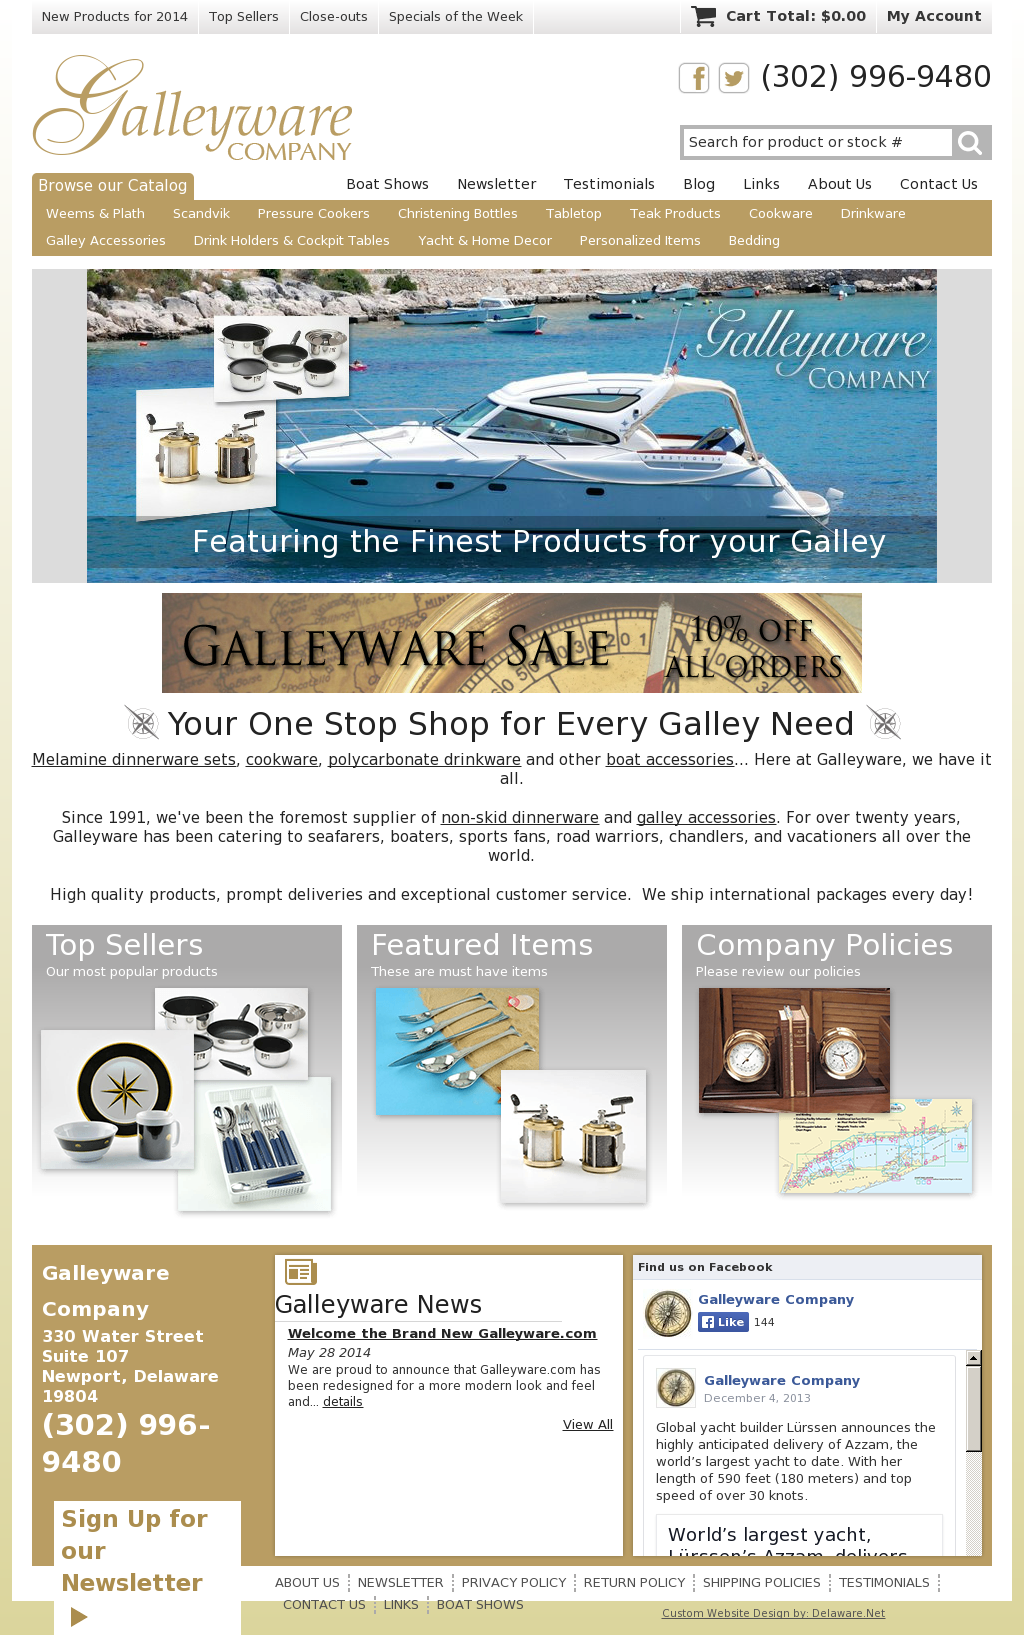 Galleyware Company Competitors, Revenue and Employees - Owler ...